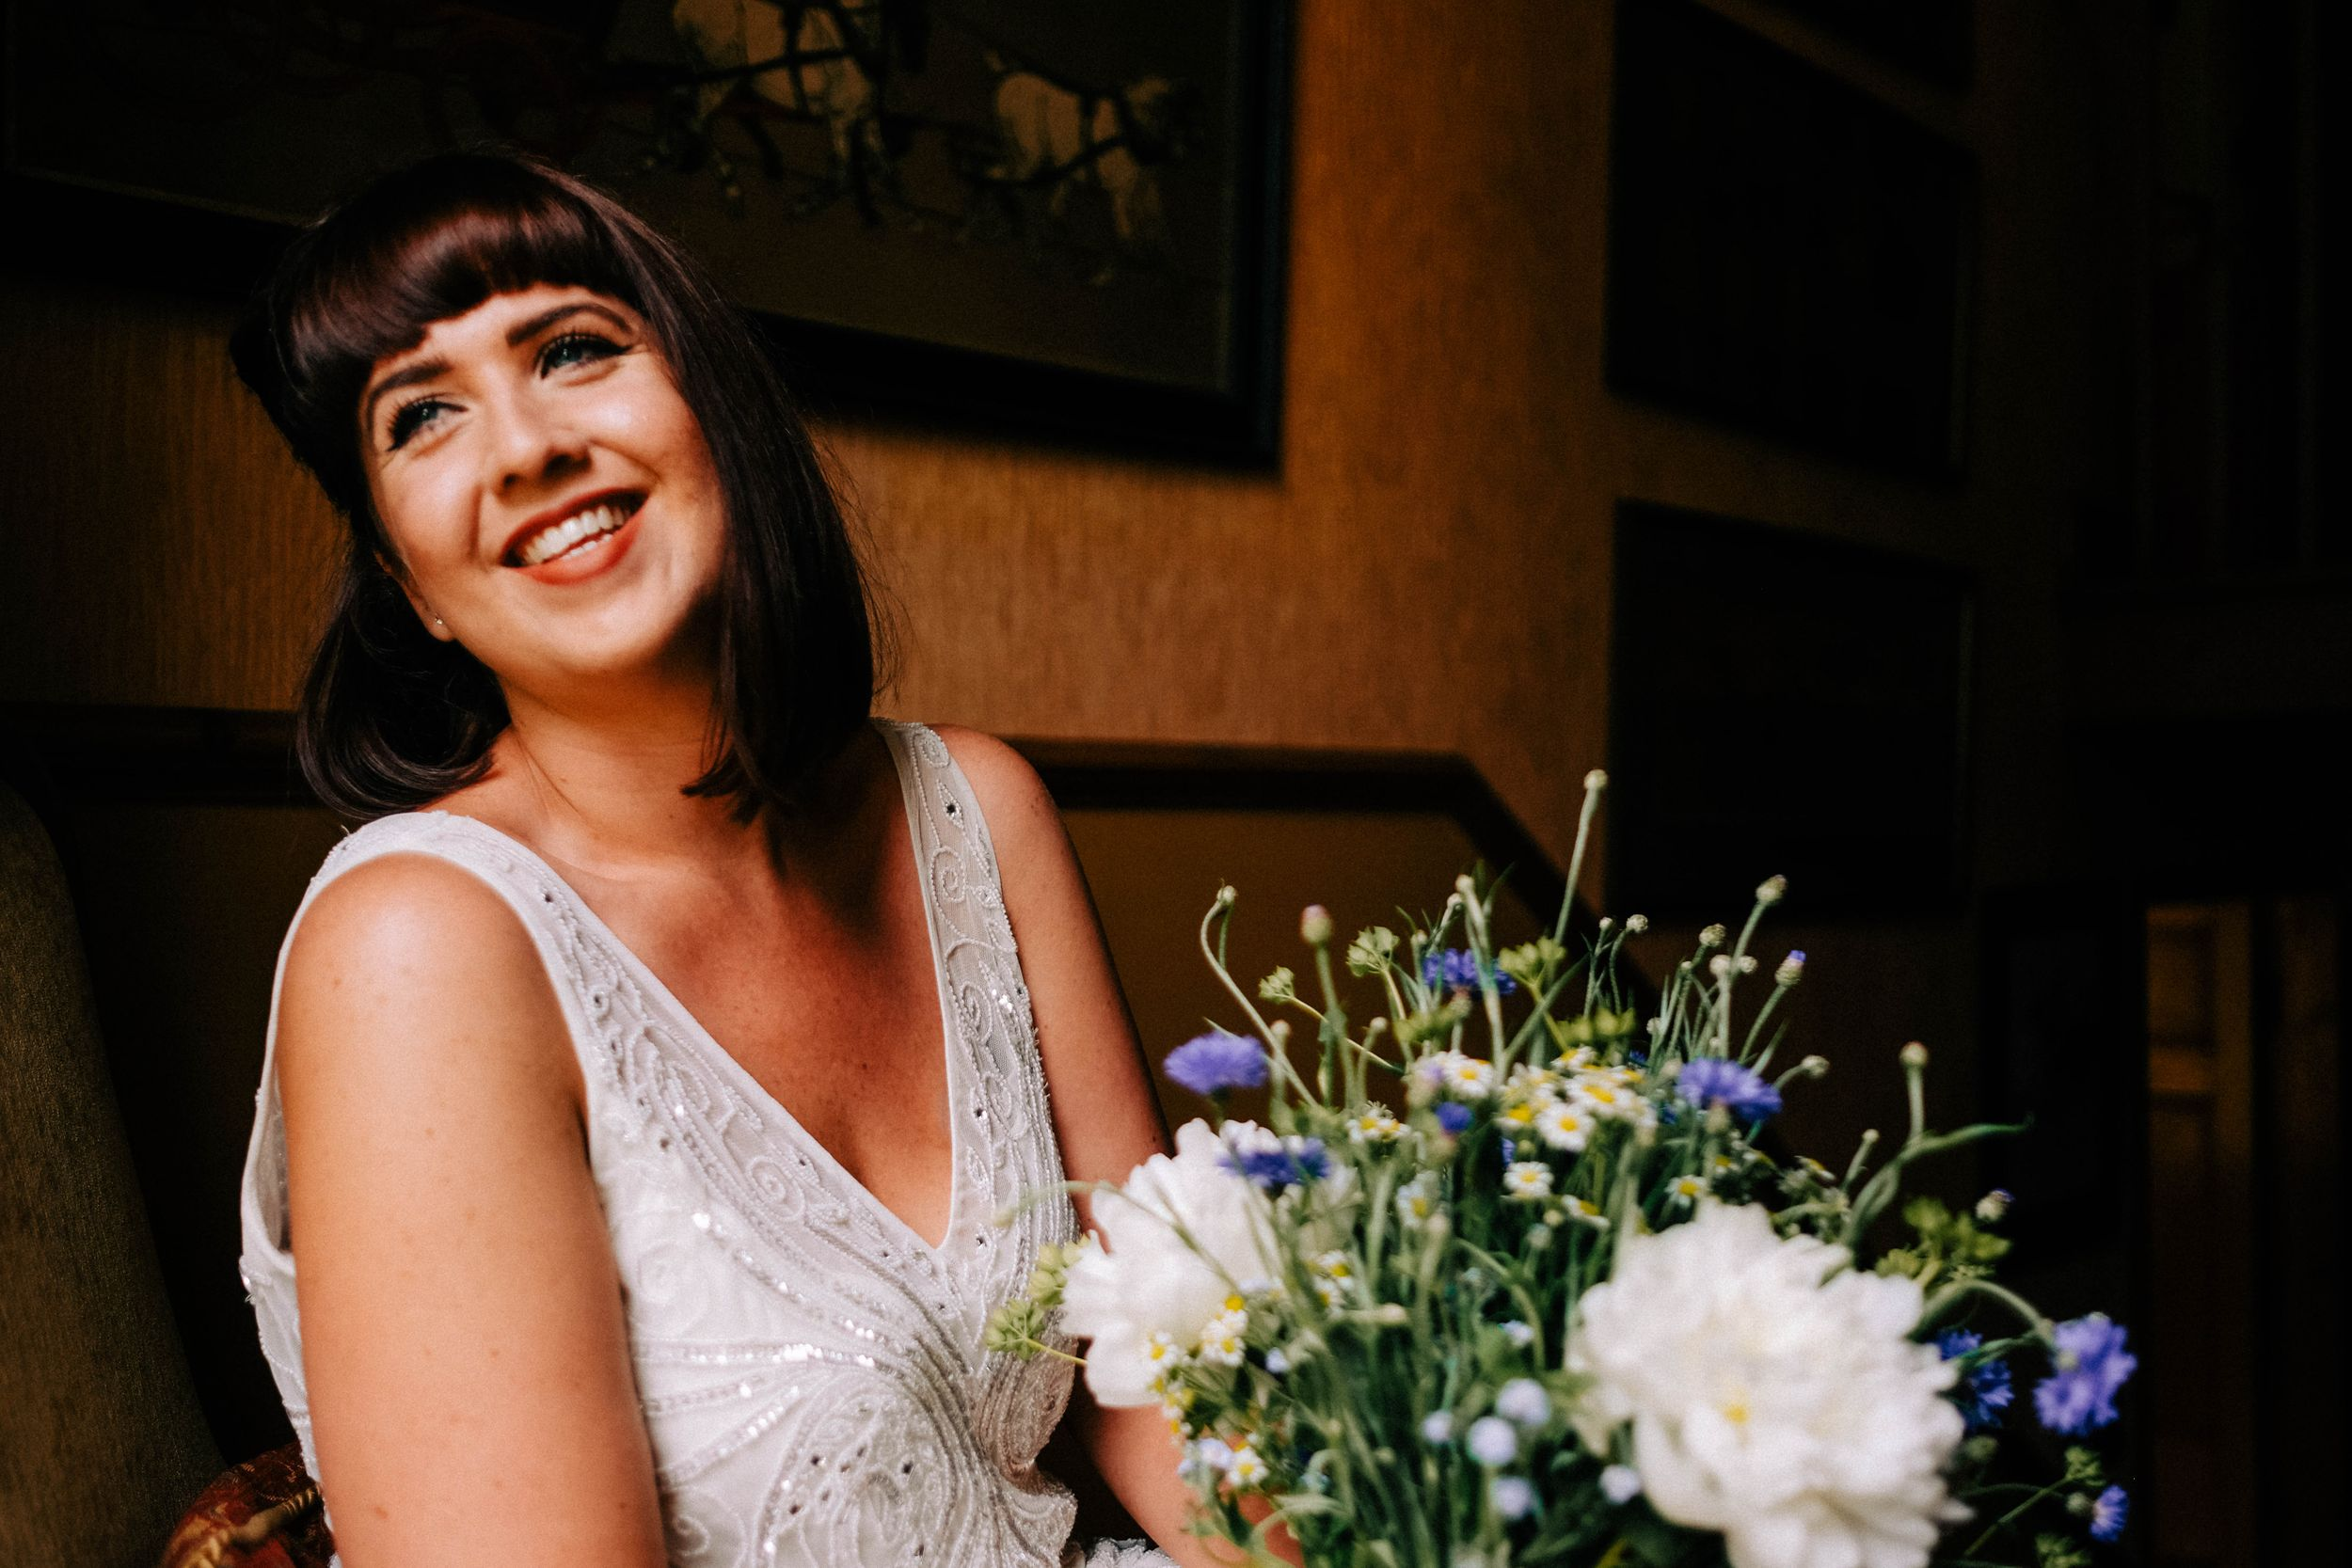 Chelsea Cannar Photography - Lake district wedding photographer, natural and relaxed coverage - New House Farm Wedding